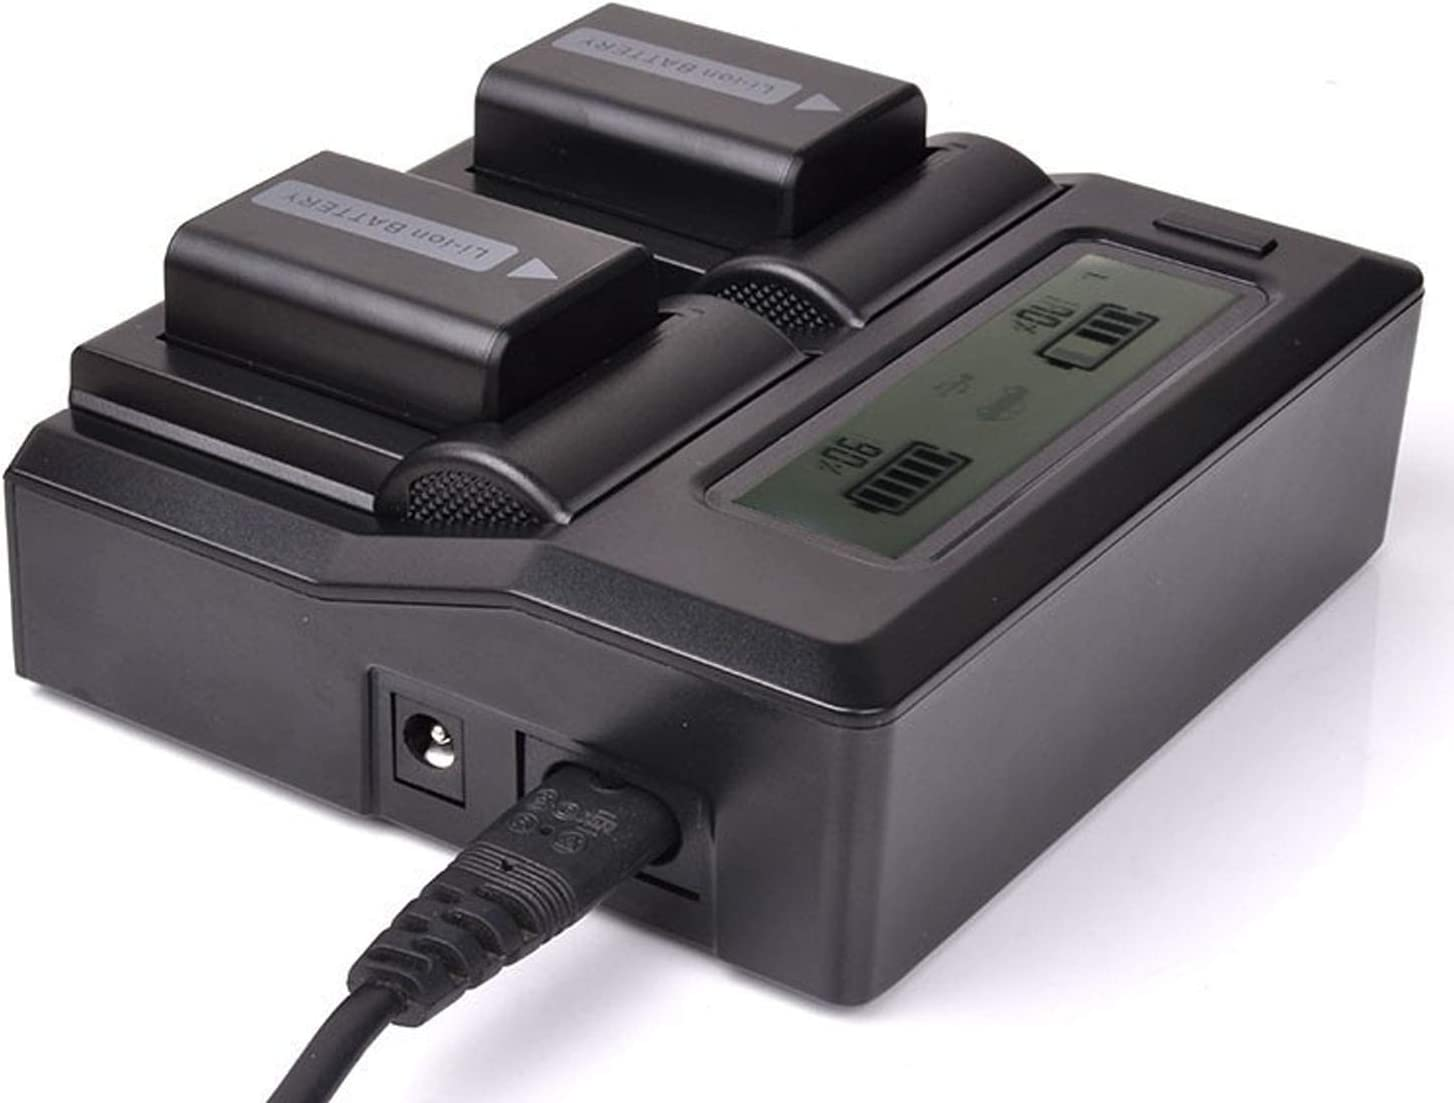 LCD Dual Fast Battery Charger for Sony CCD-TRV428 CCD-TRV428E CCD-TRV438E Handycam Camcorder CCD-TRV438